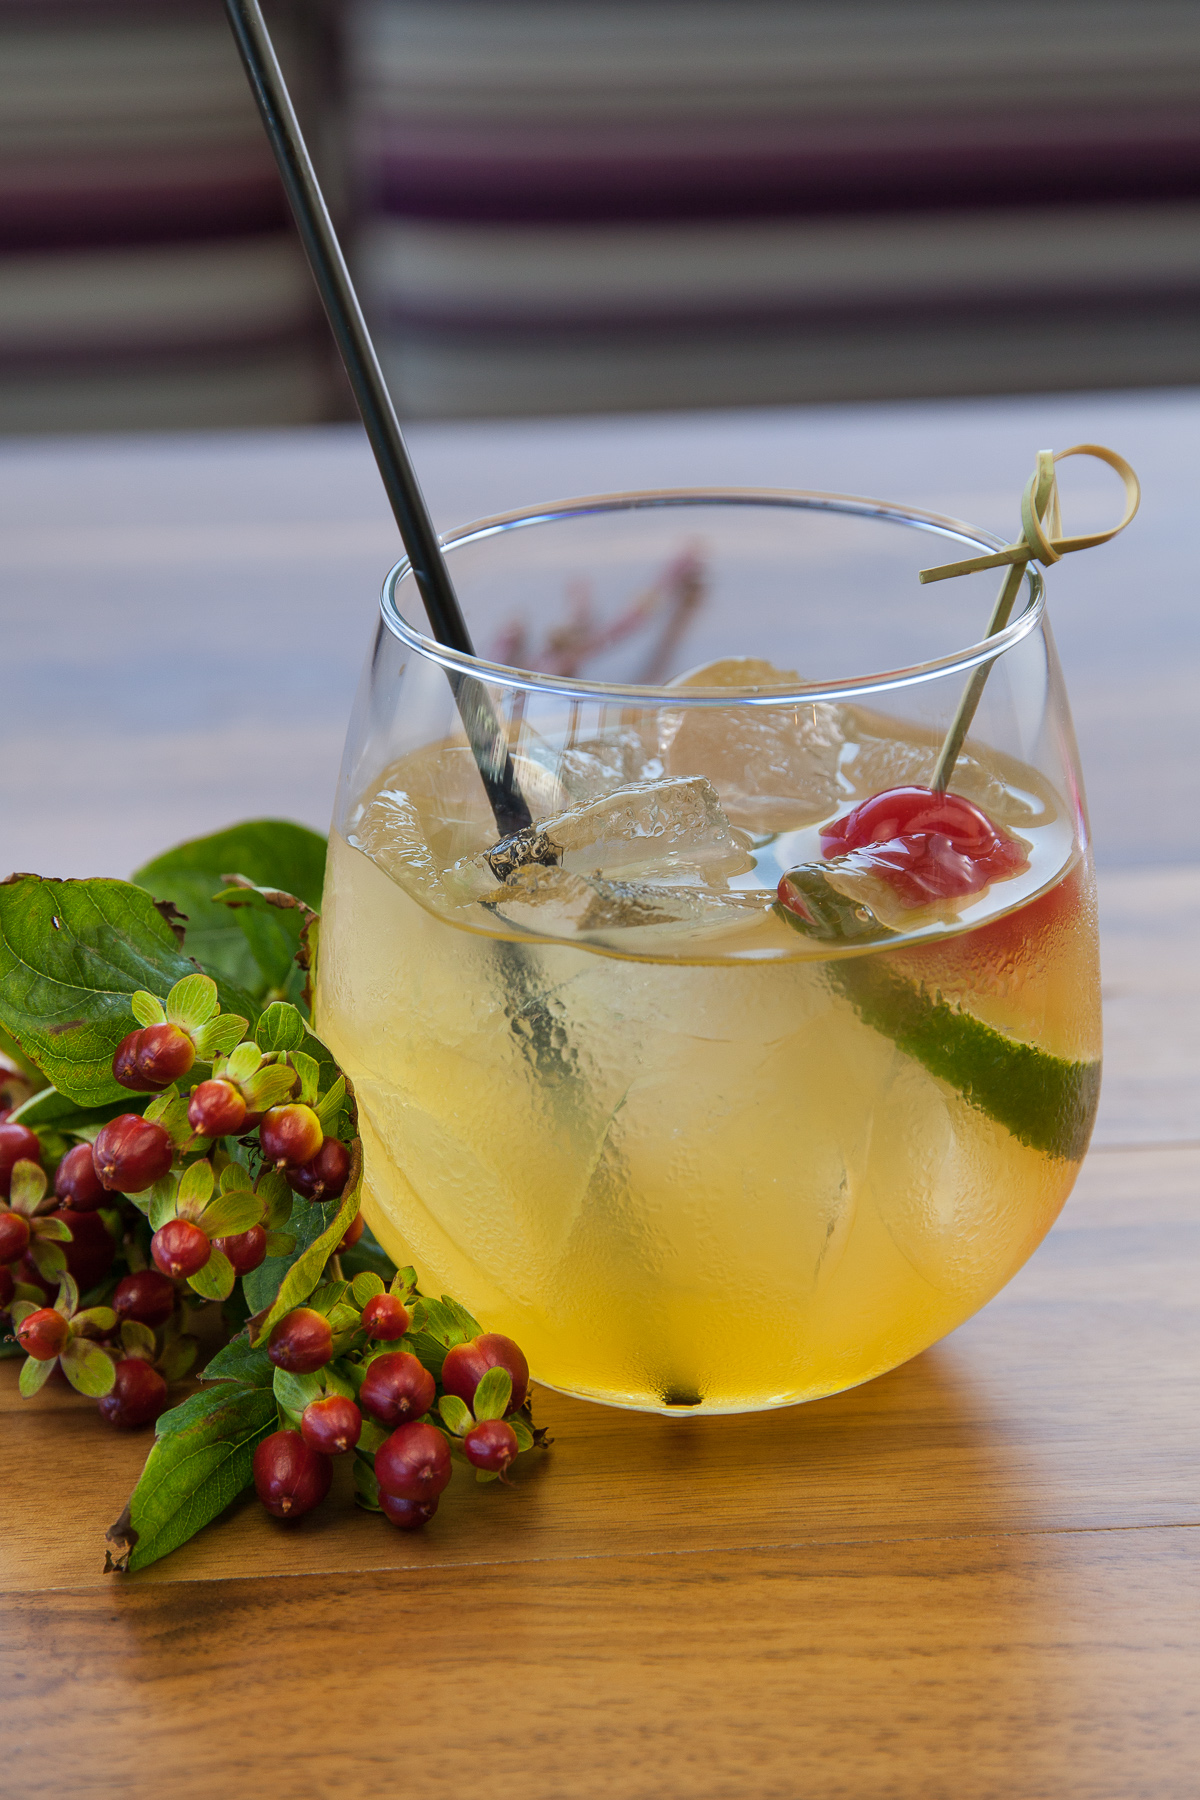 TASTE WHY WE'RE THE PREFERRED BEVERAGE PROVIDER   for top venues throughout the Valley.